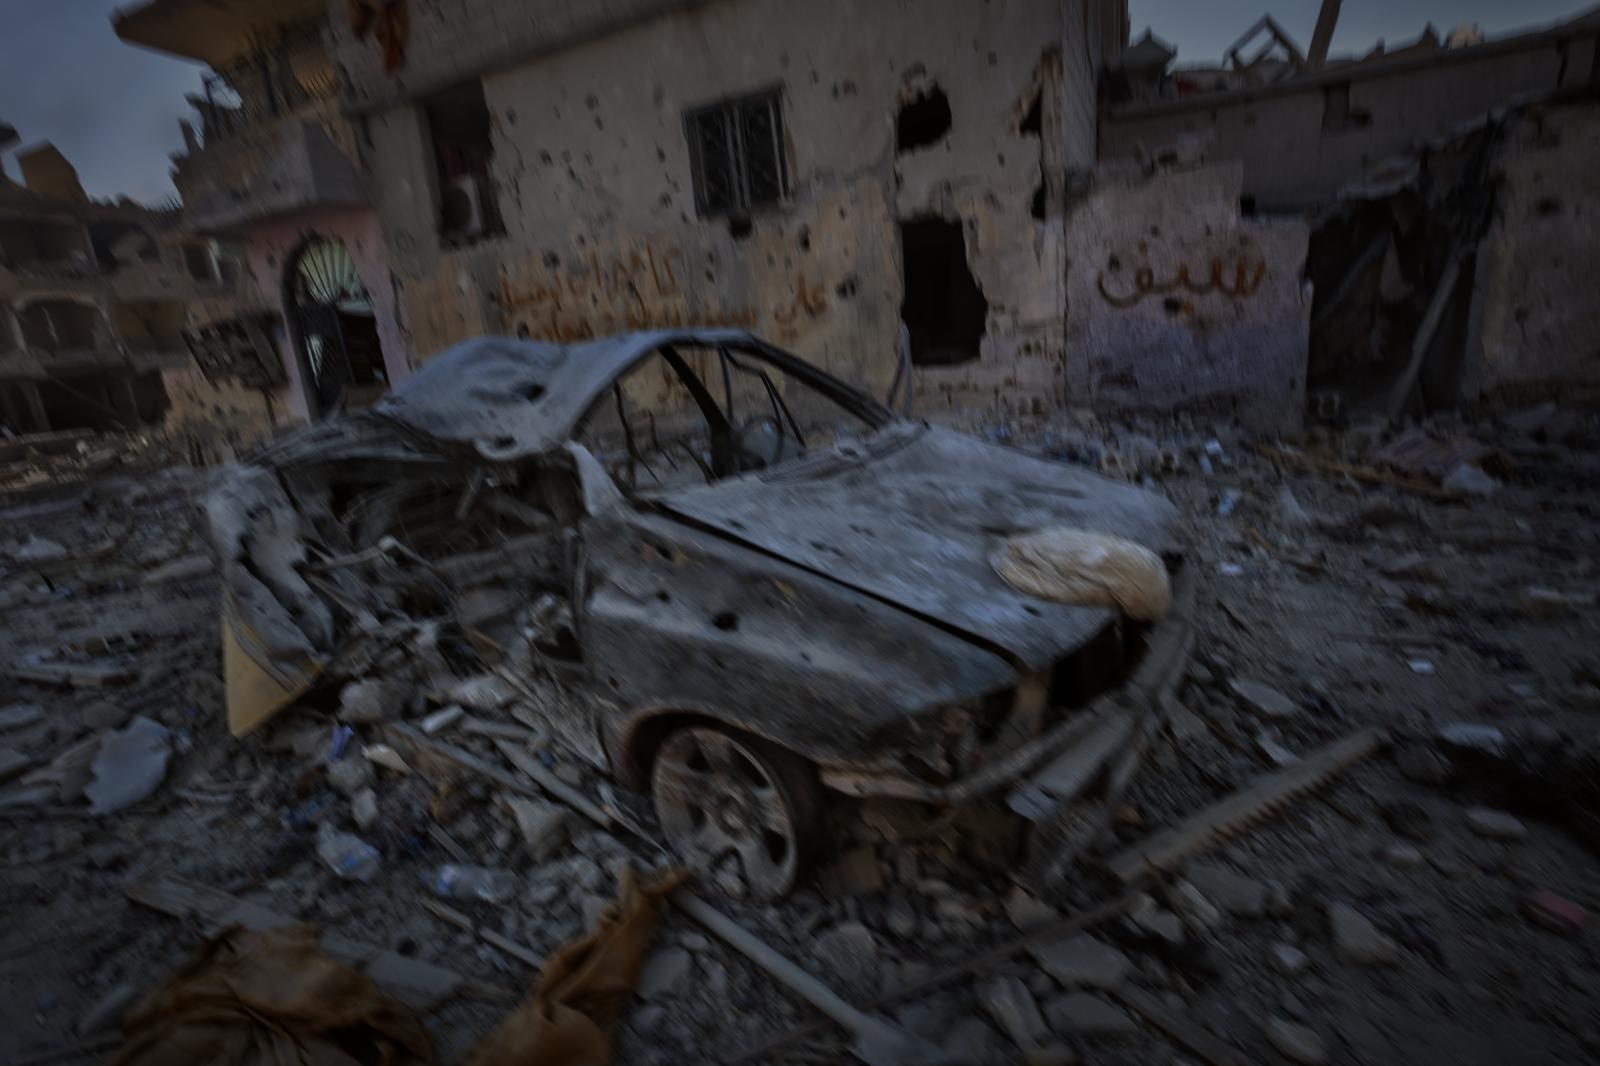 This image of destruction was captured during the battle for Raqqa, very close to where ISIS held its last position in the sadly famous stadium that served as a prison and torture center (Syria,2017)